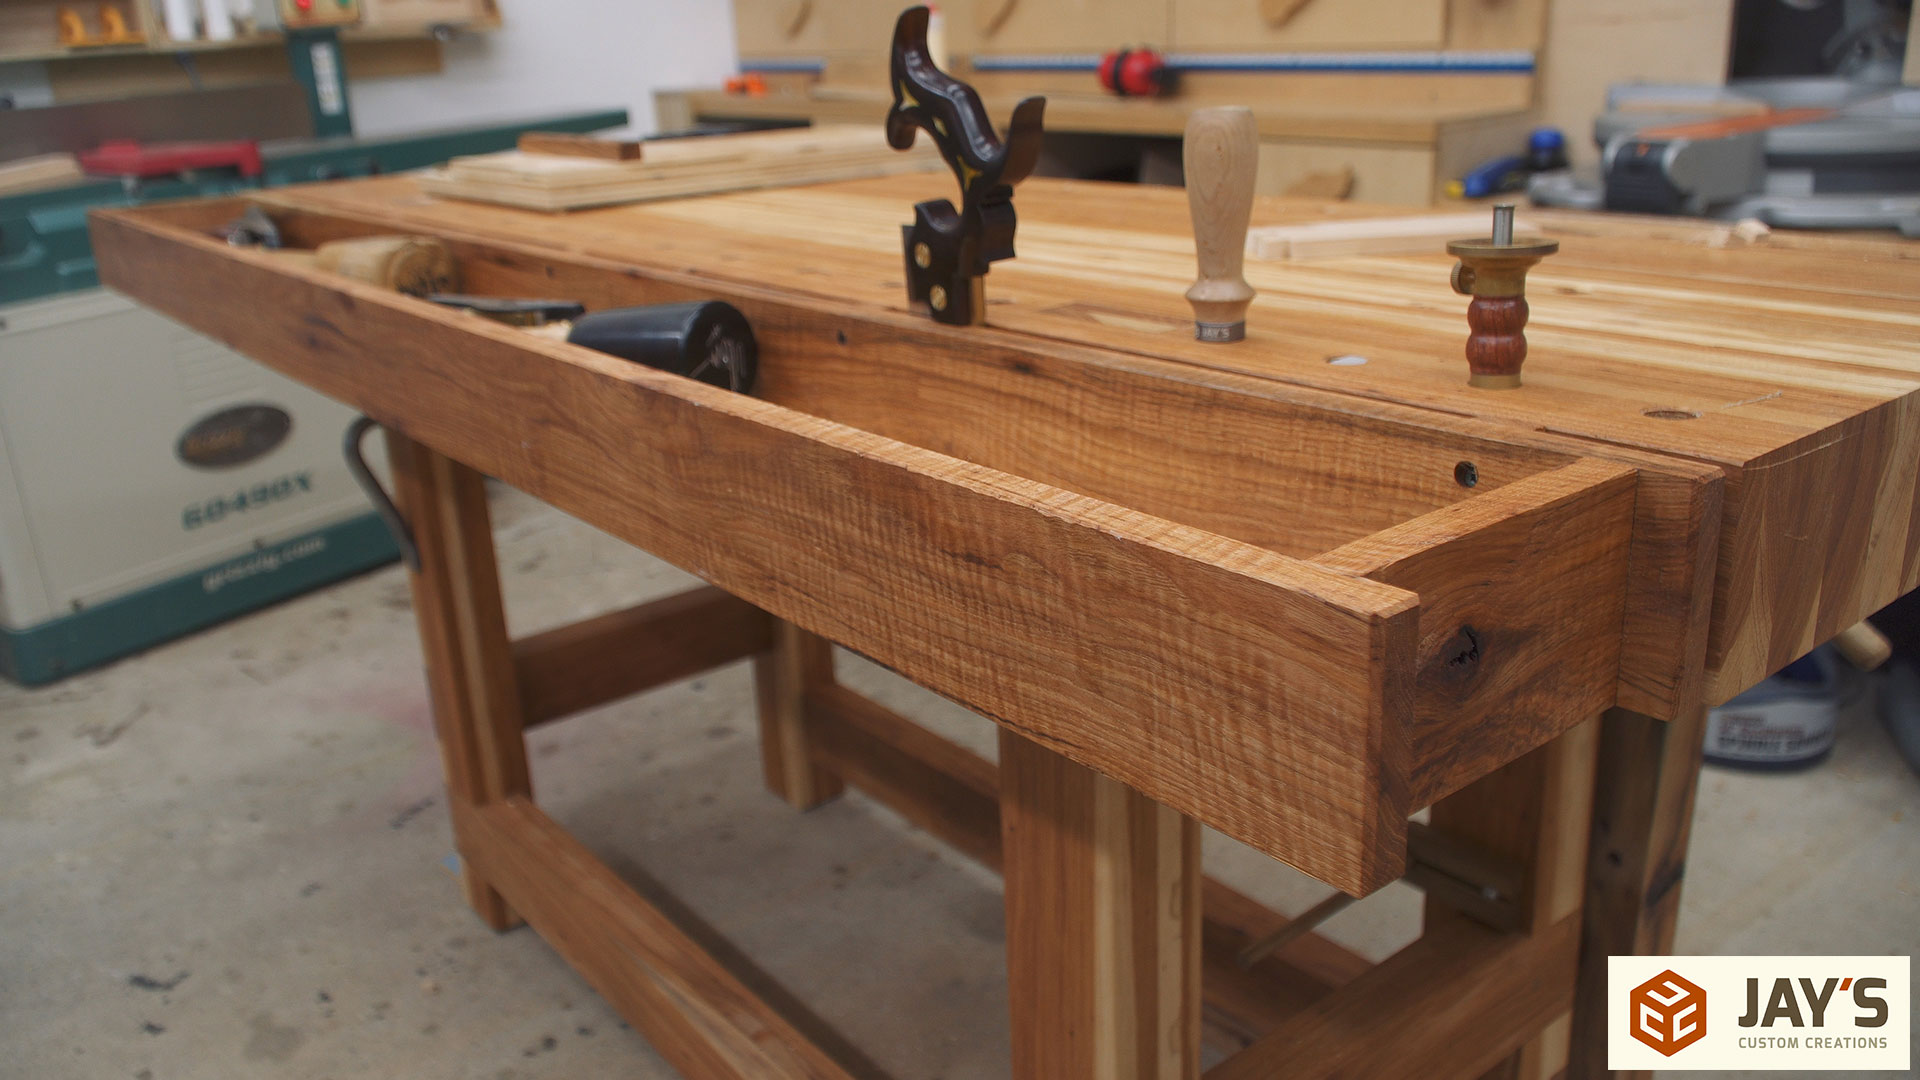 Adding A Tool Well To A Workbench Jays Custom Creations